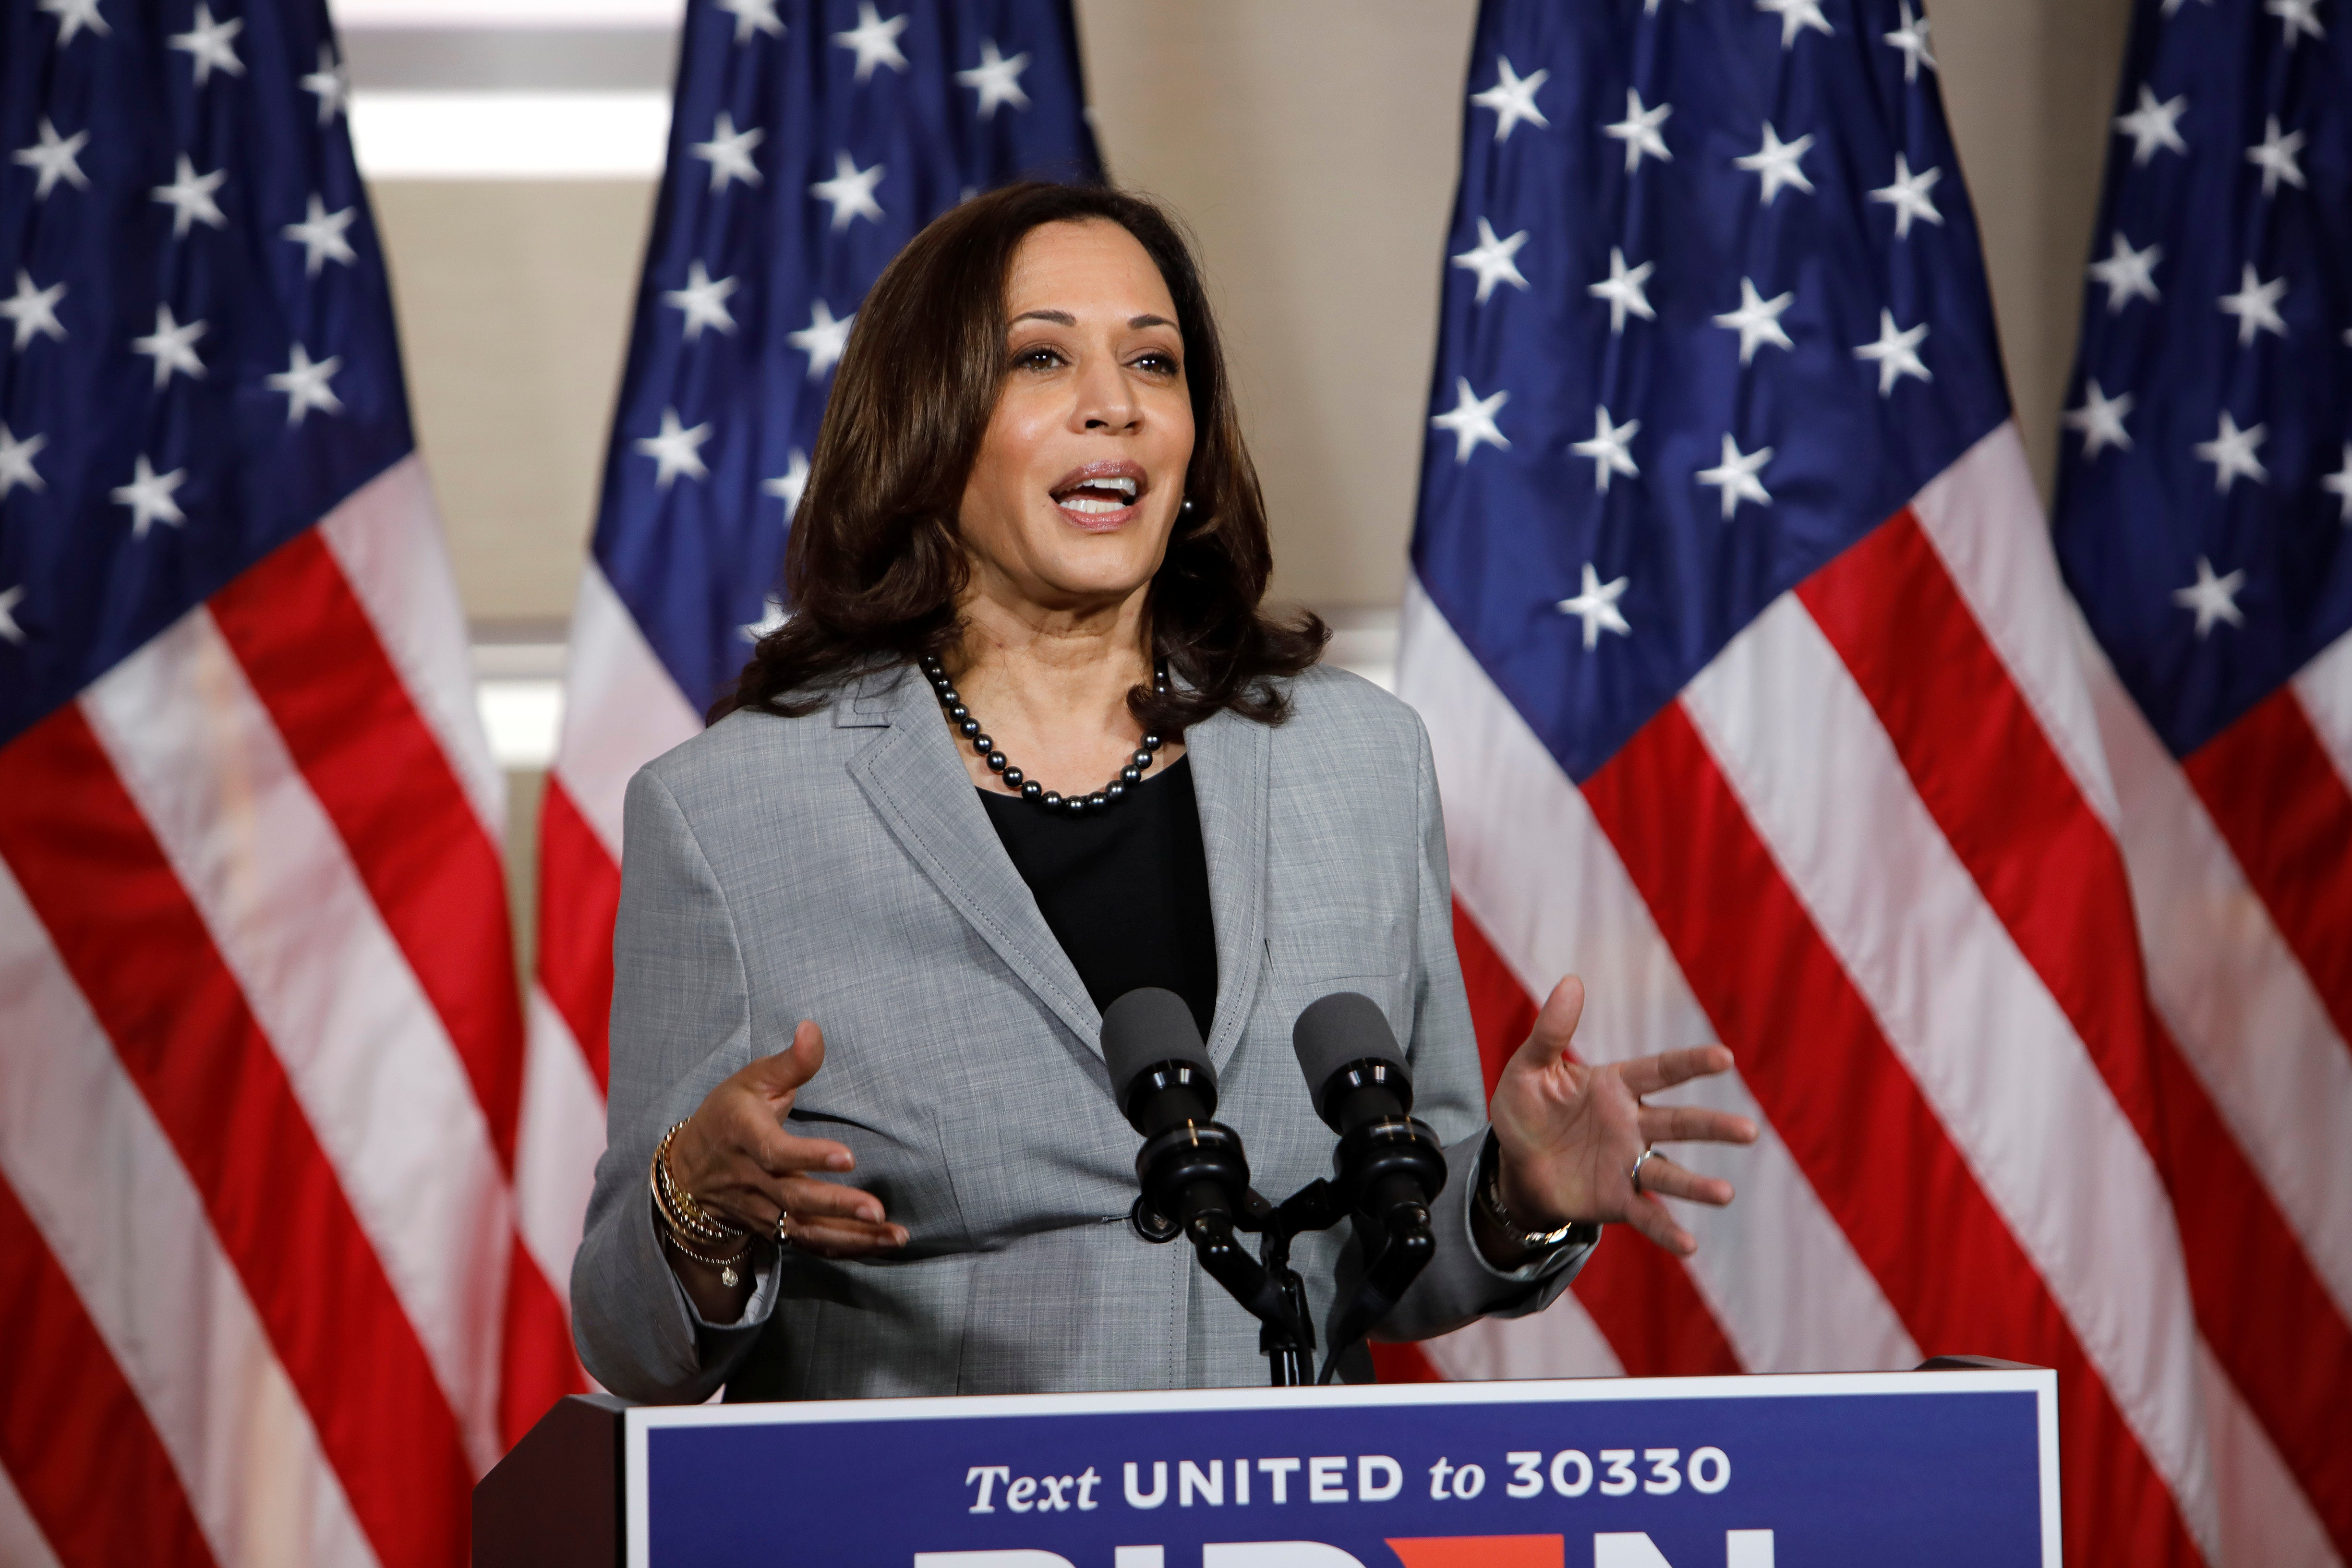 It S Always An Extra Burden Placed On Women Kamala Harris Faces Sexism And Racism At Vp Debate Experts Say The Independent